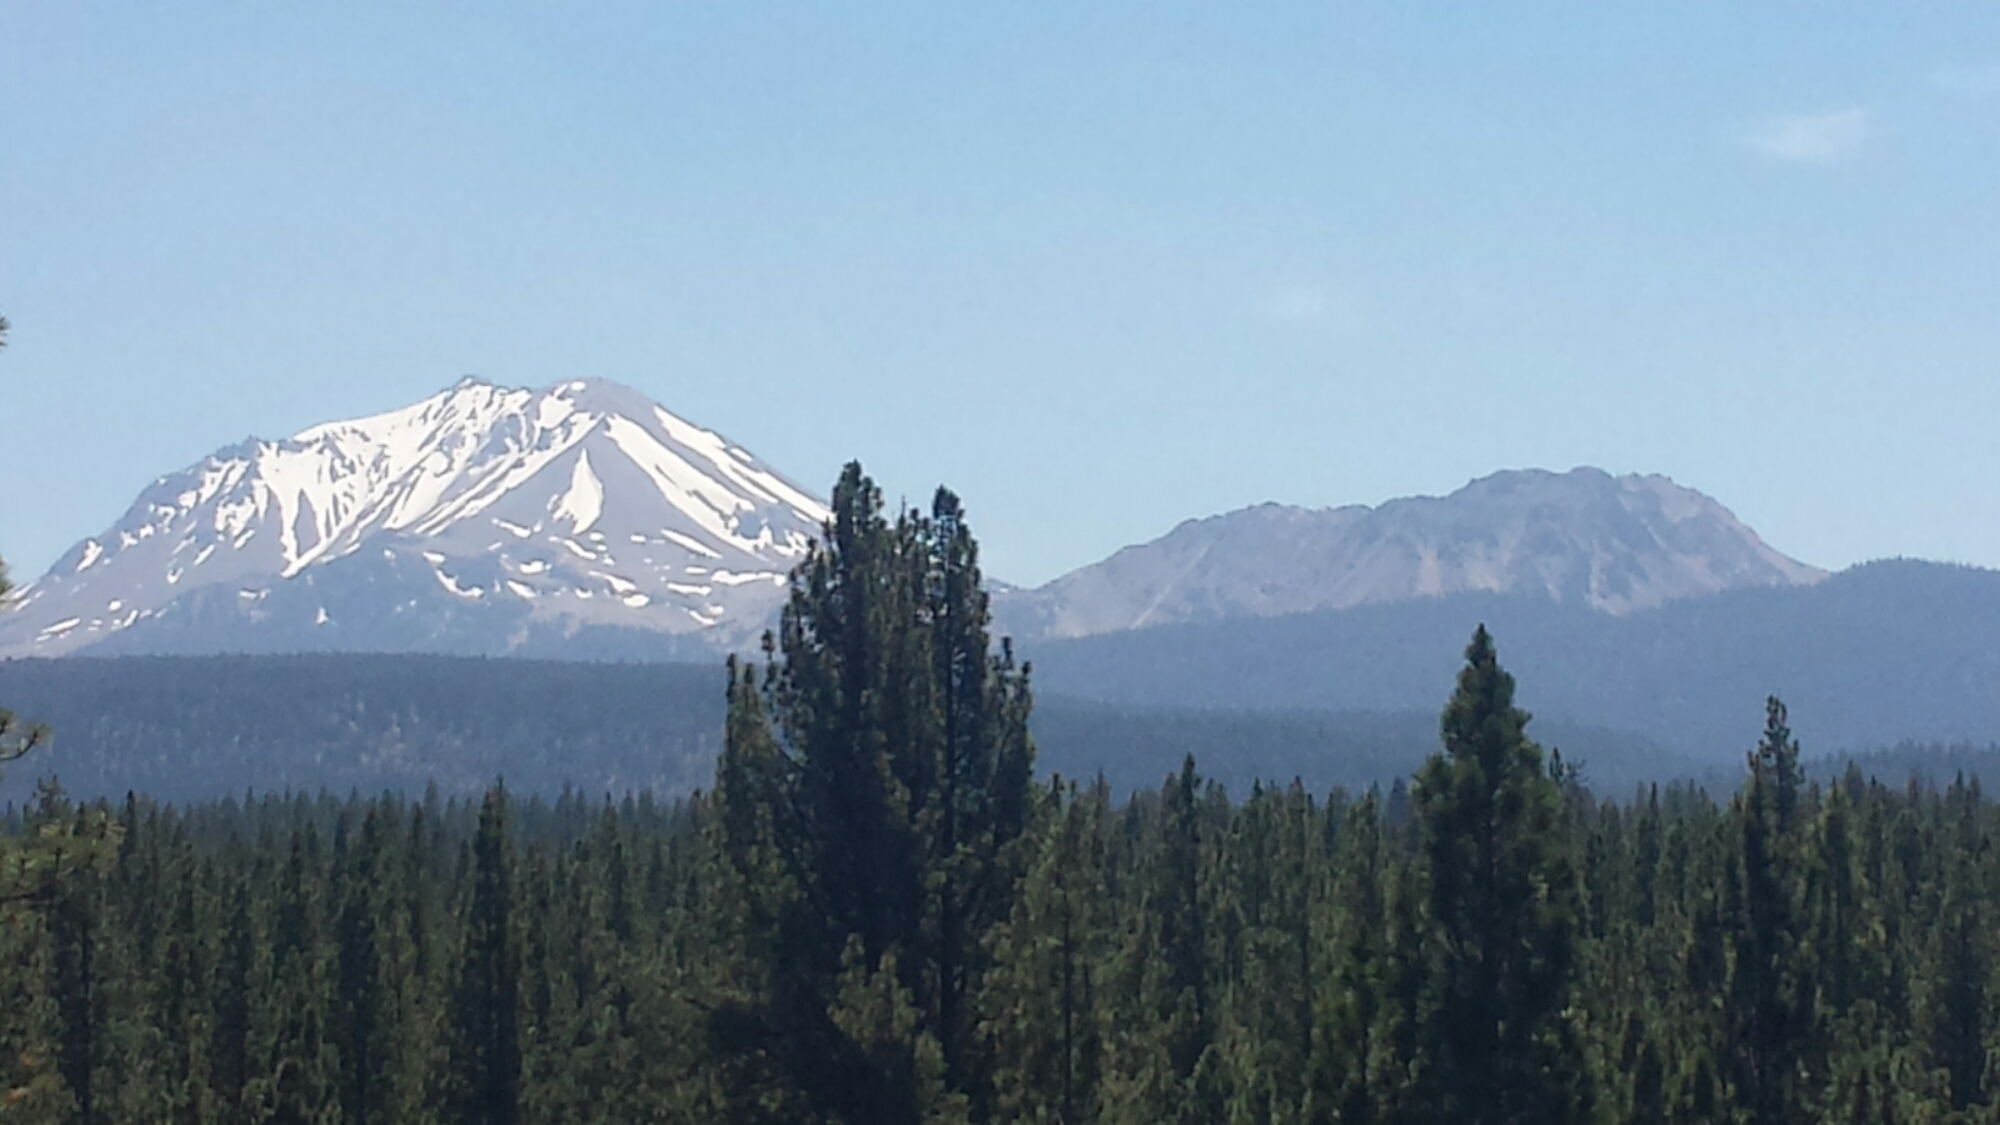 Lassen Peak and Brokeoff Mountain